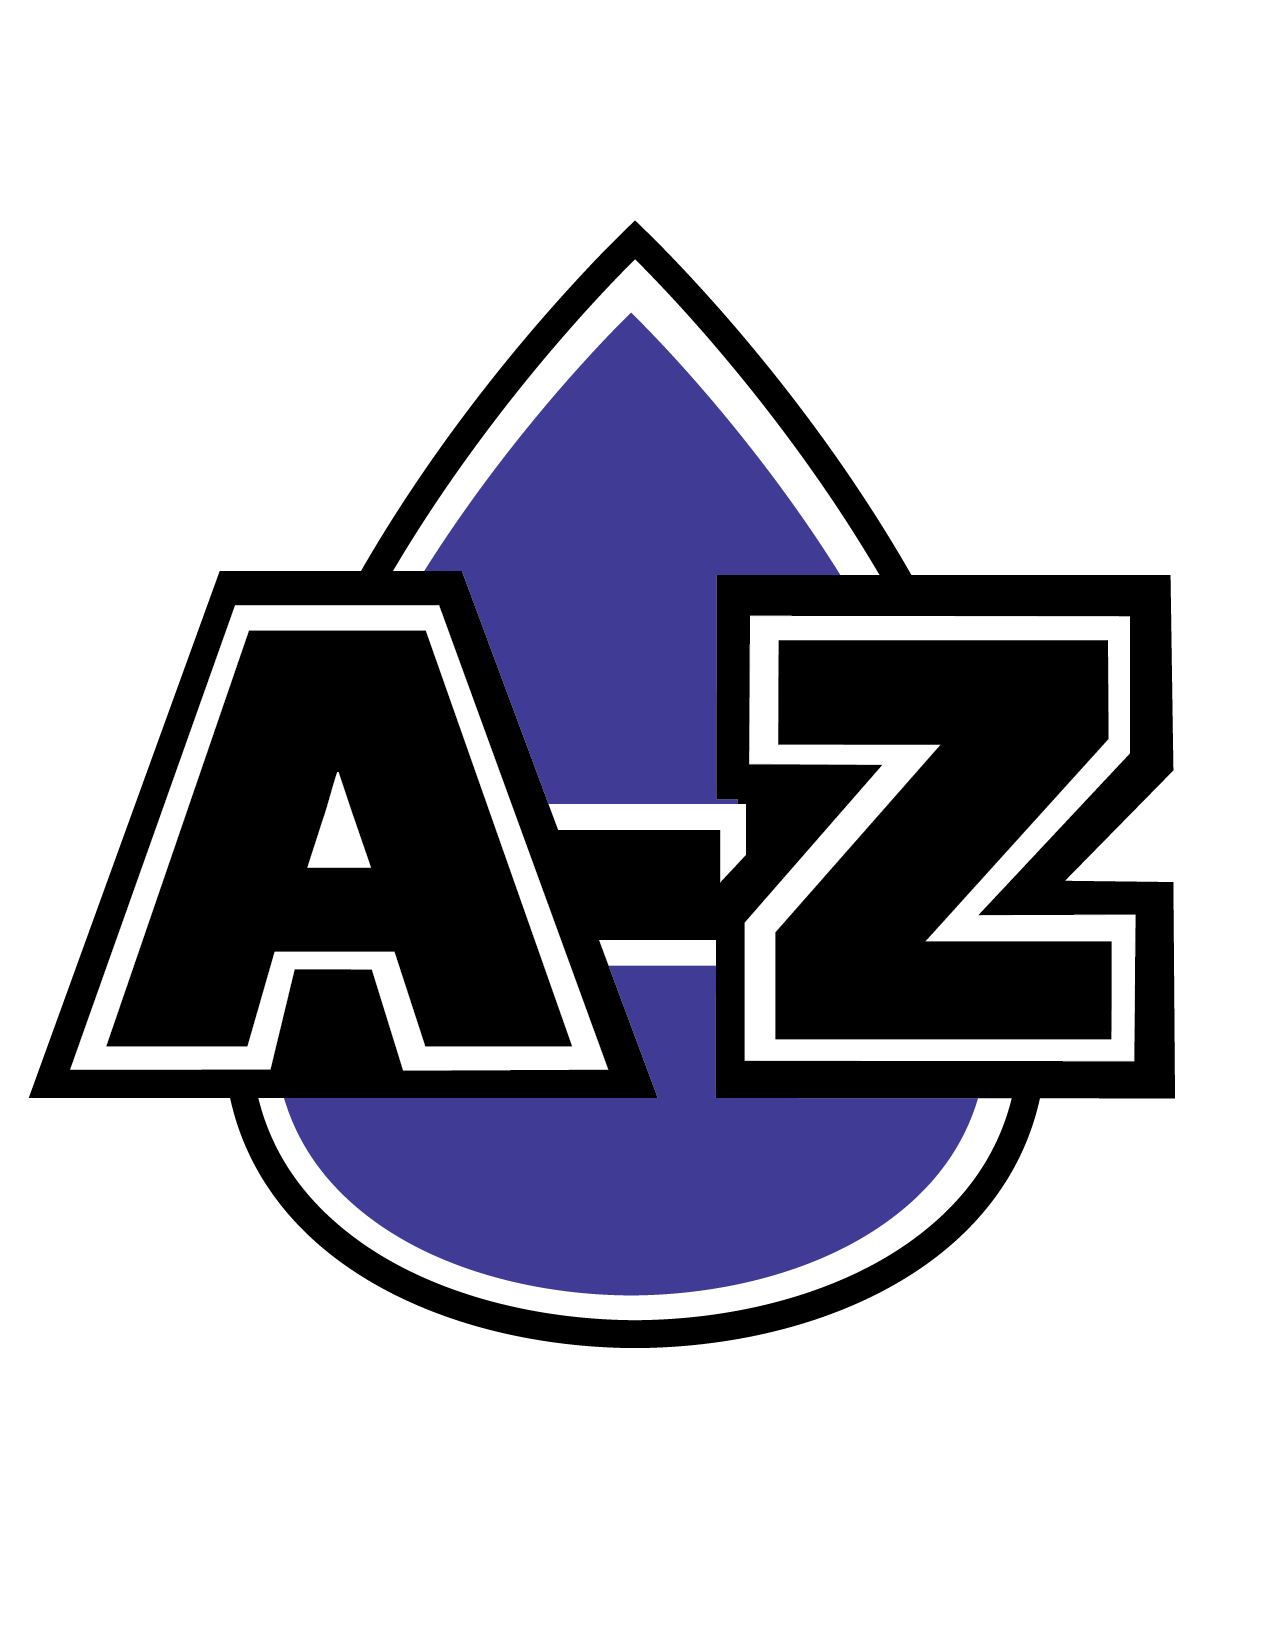 AZPW Maintenance Services